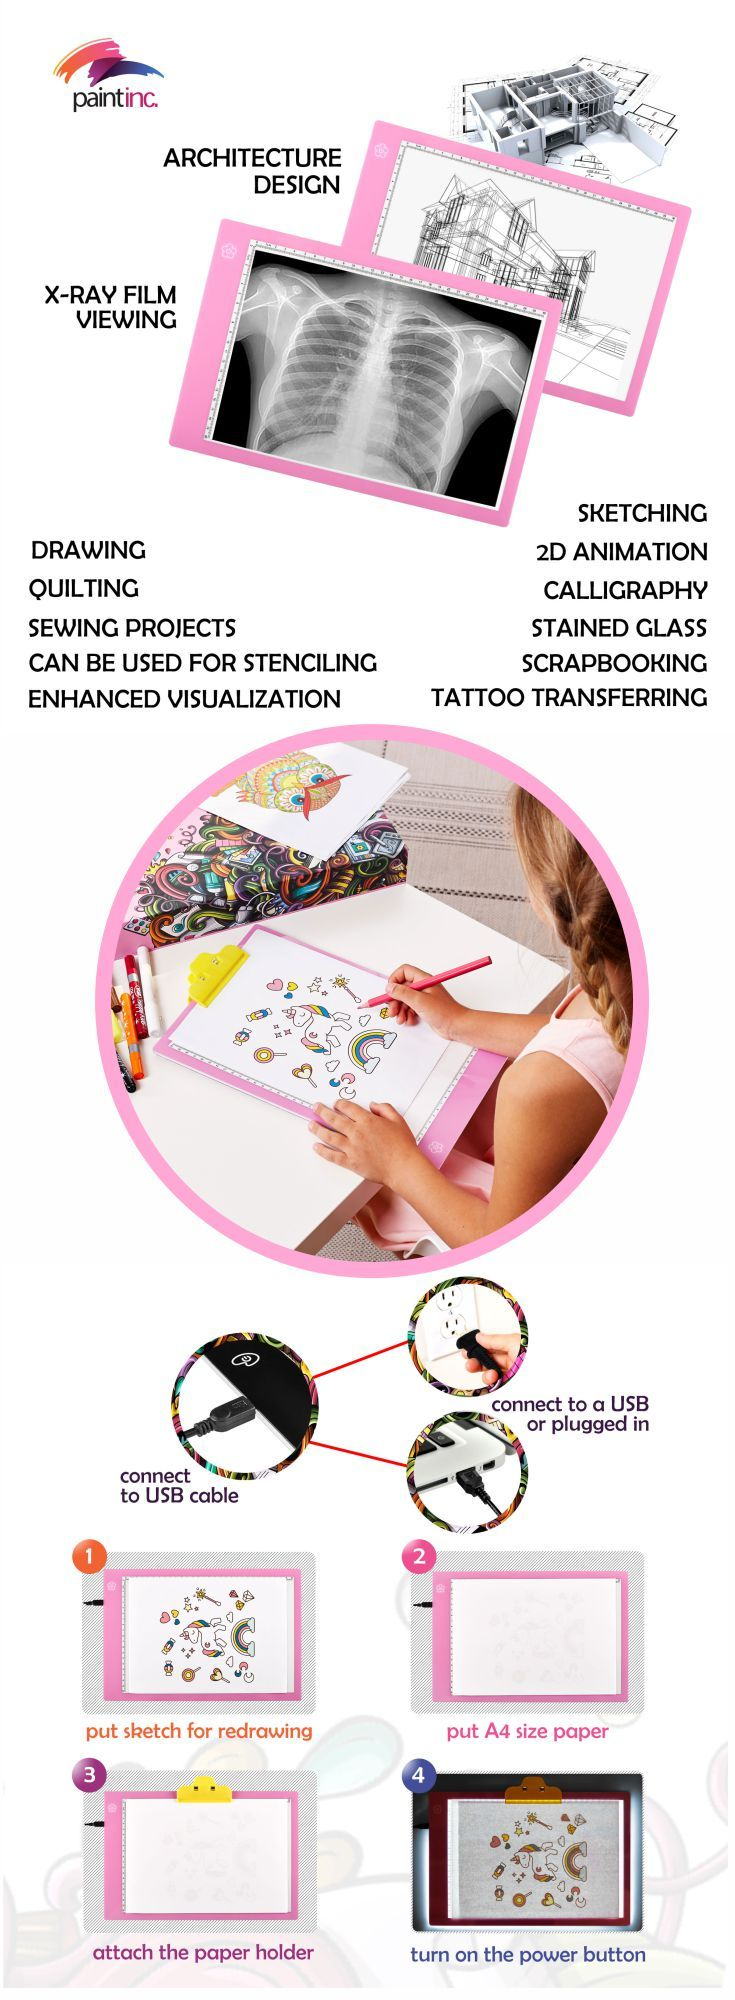 Just buy in AMAZON our tracing pad, led board, digital sketch pad, drawing board, drawing kit, led light box, light pad, tracing light box, drawing pad, light table for art drawings, art activities for kids, etc.